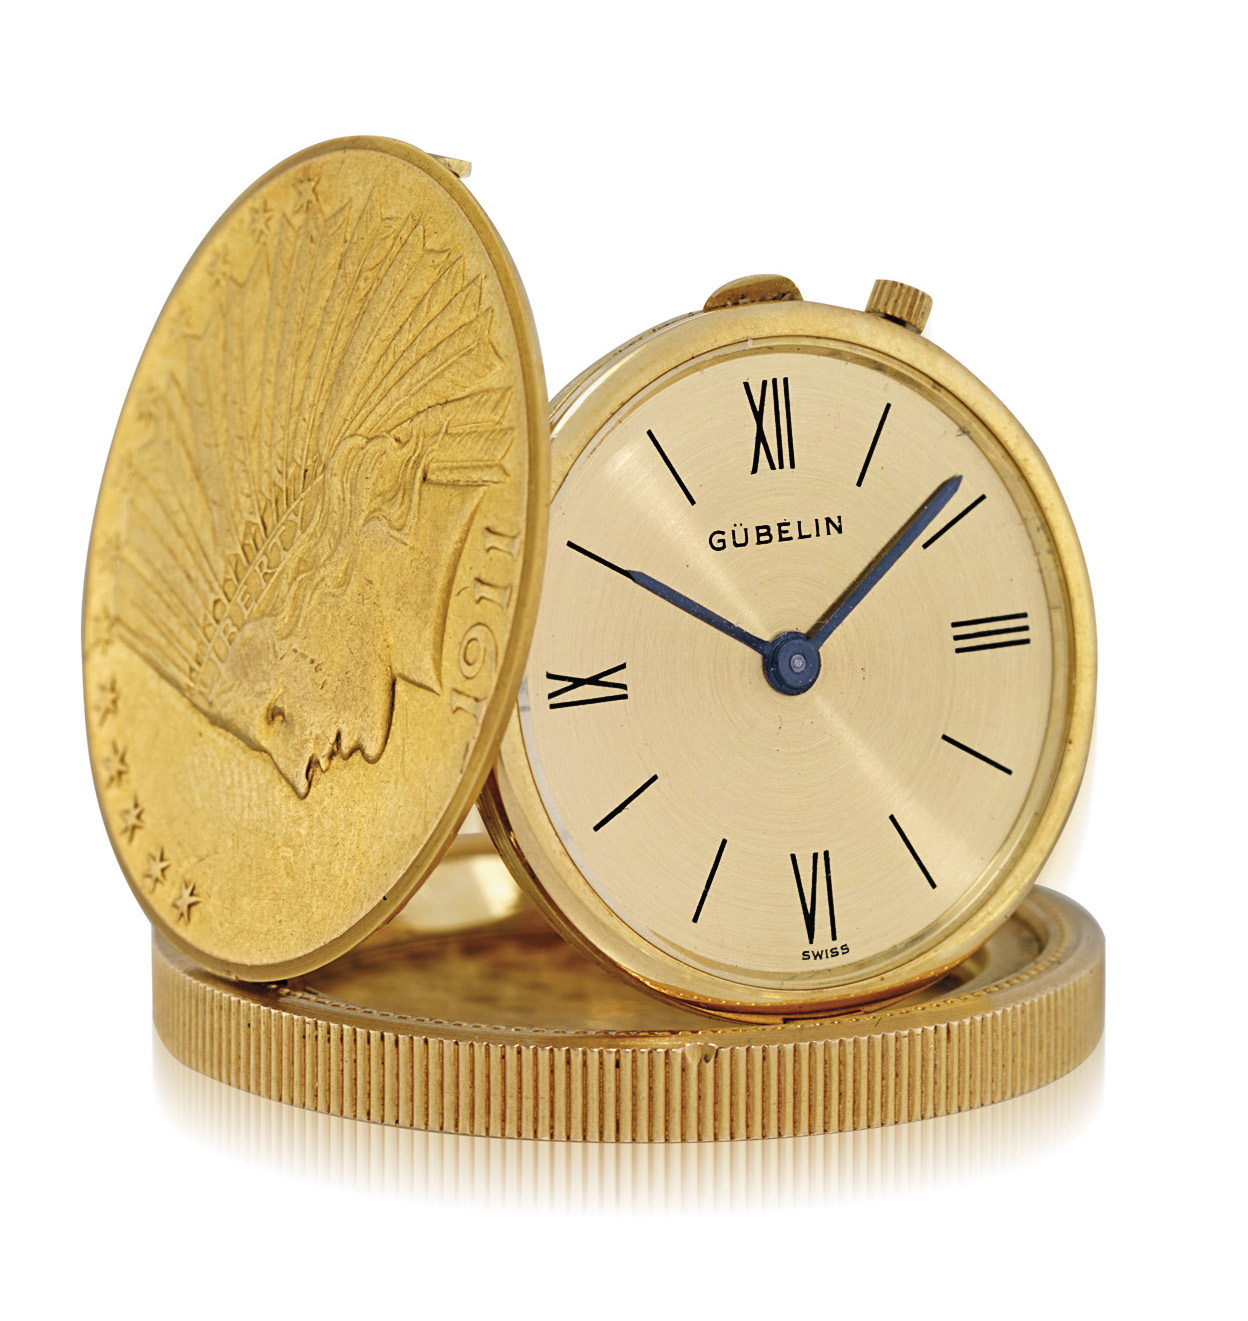 GUBELIN. AN 18K GOLD TEN DOLLAR COIN WATCH